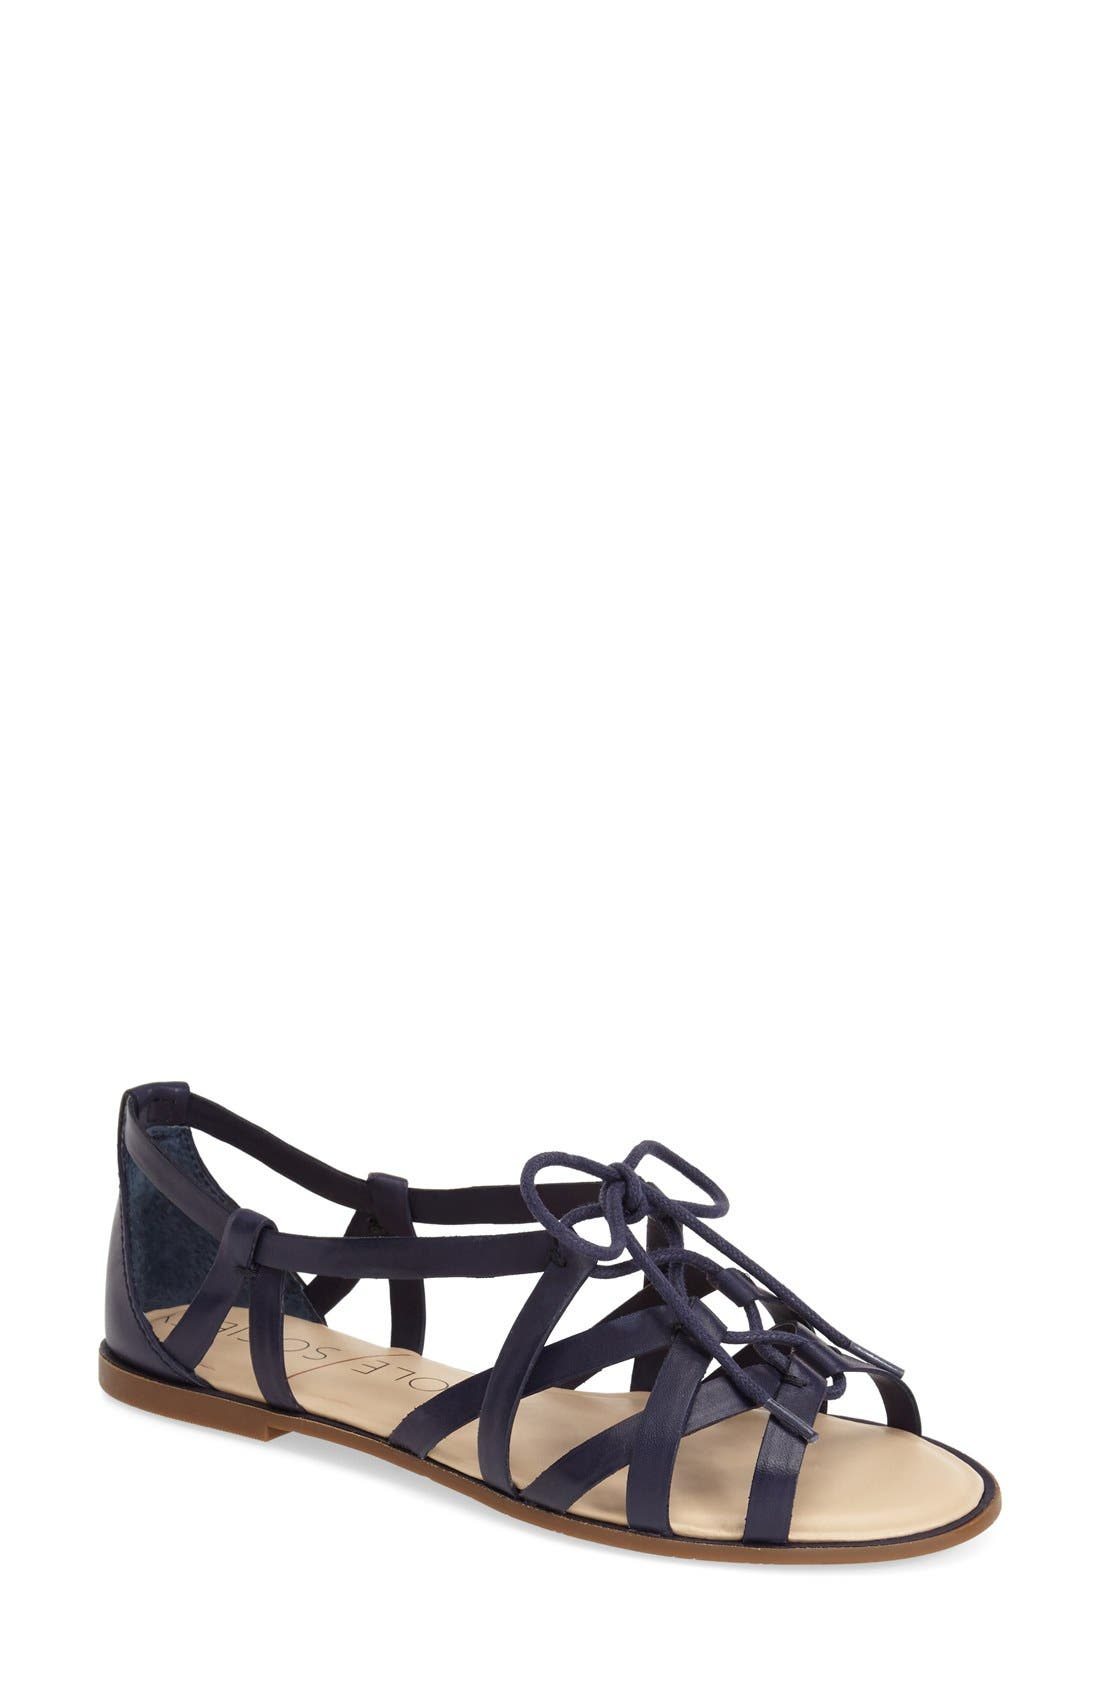 Alternate Image 1 Selected - Sole Society 'Gillian' Gladiator Sandal (Women)